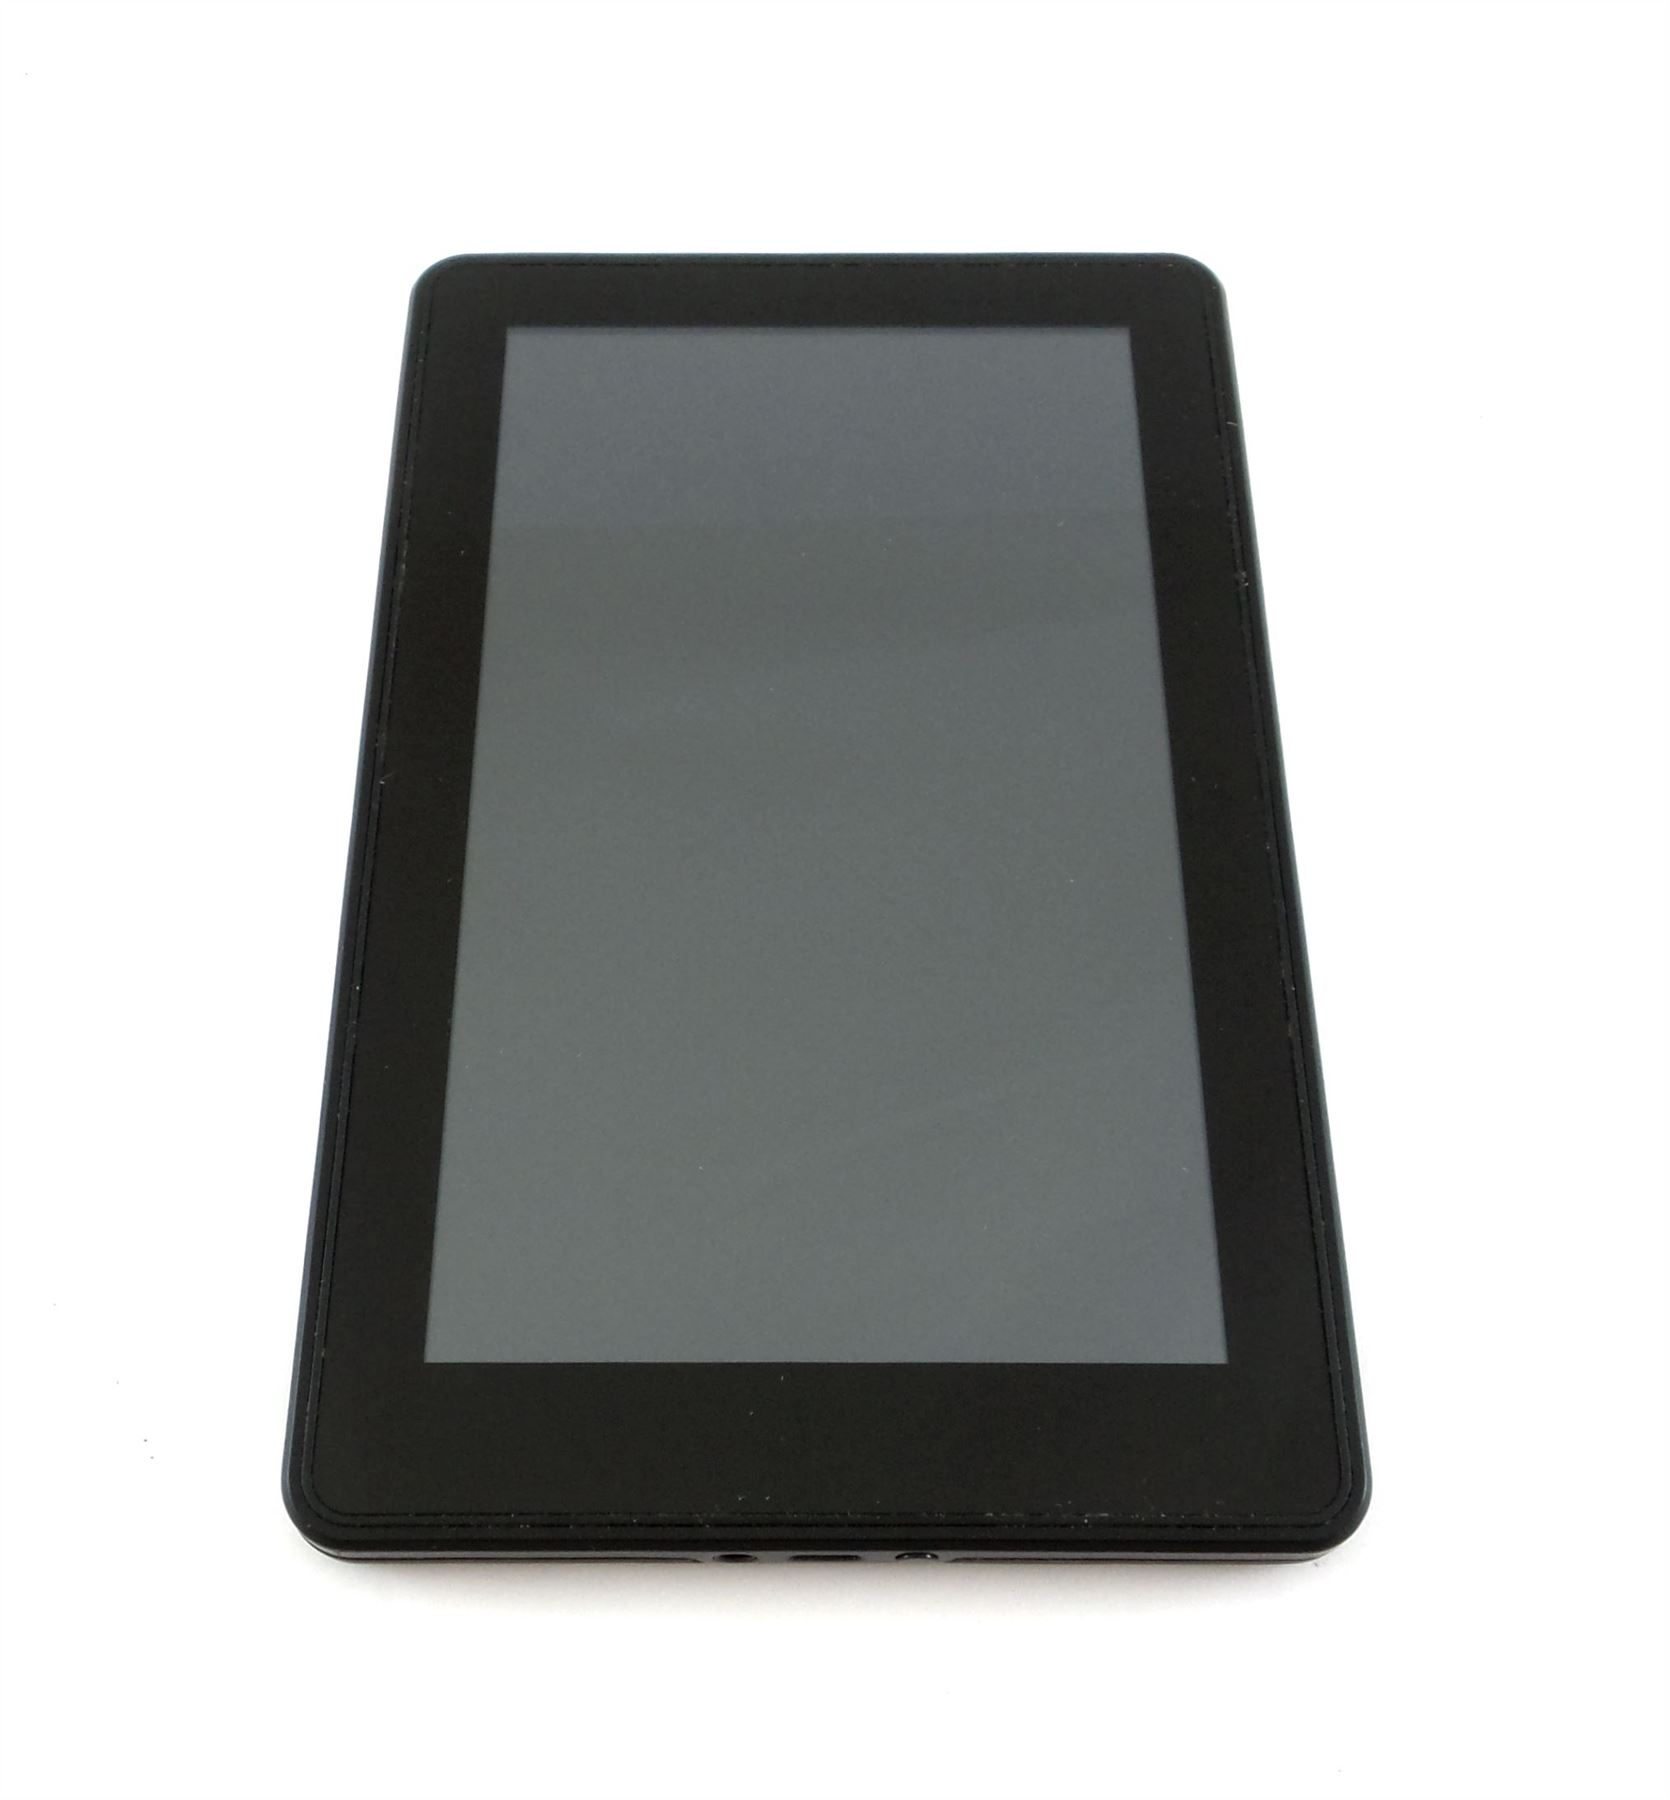 Amazon-Kindle-Fire-7-034-Tablet-8GB-Wi-